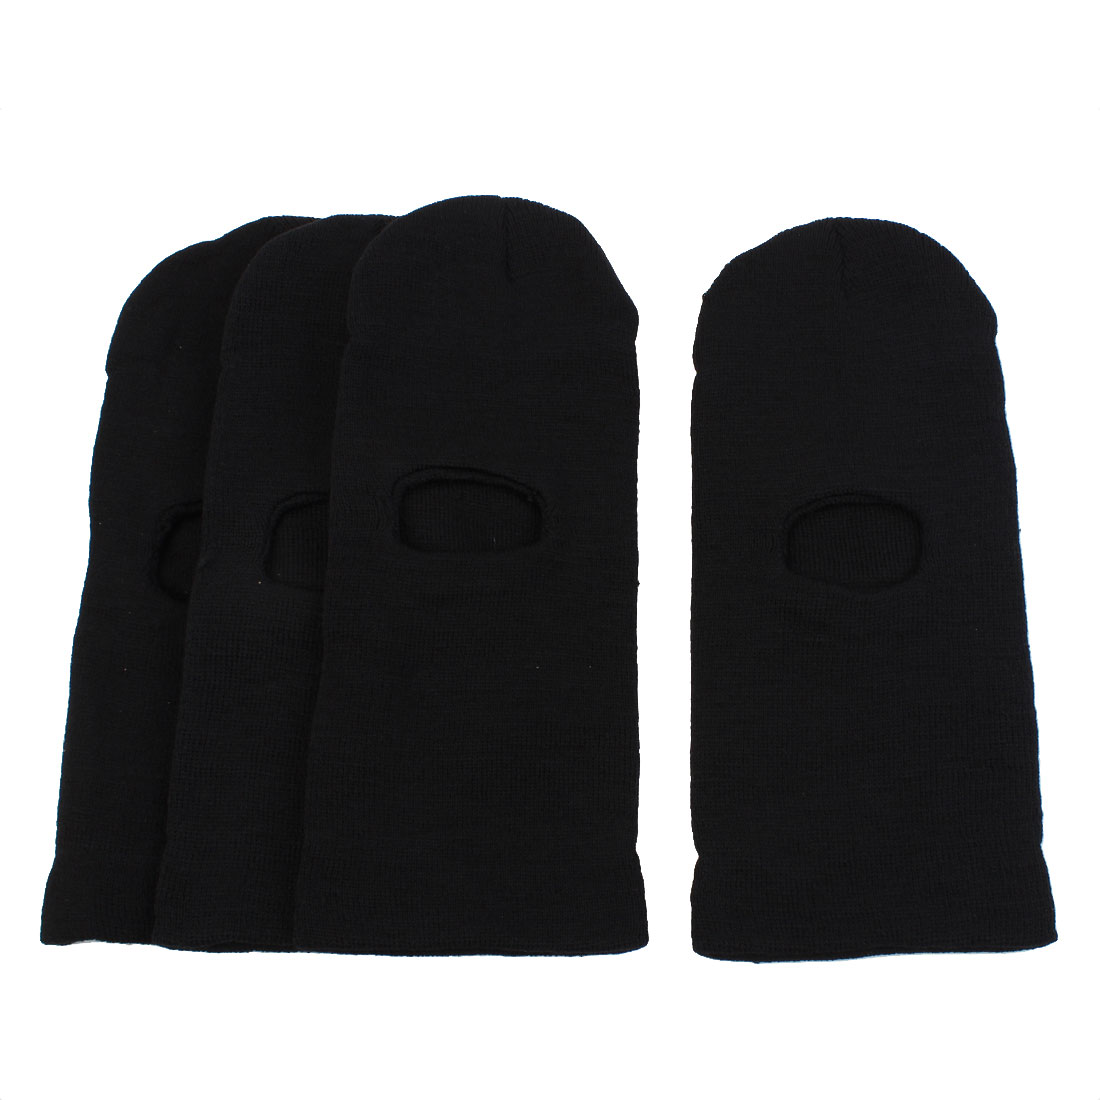 Ski Motorcycle Winter Warmer Balaclava Full Face Neck Hat Tactical Swat Police Mask Black 4PCS